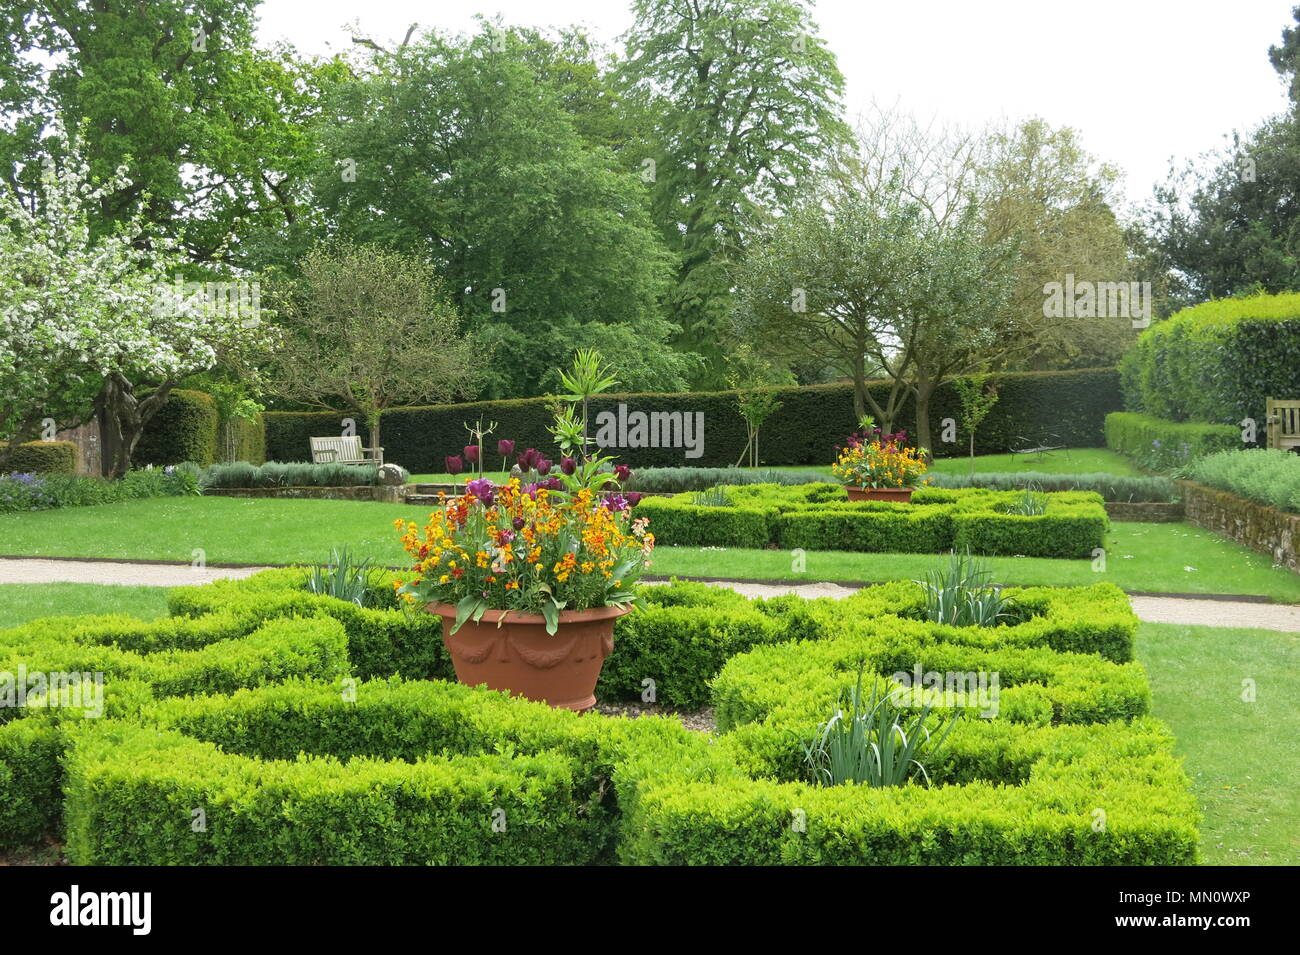 The garden next to Leicester's Gatehouse at Kenilworth Castle; an English Heritage property in Warwickshire. - Stock Image